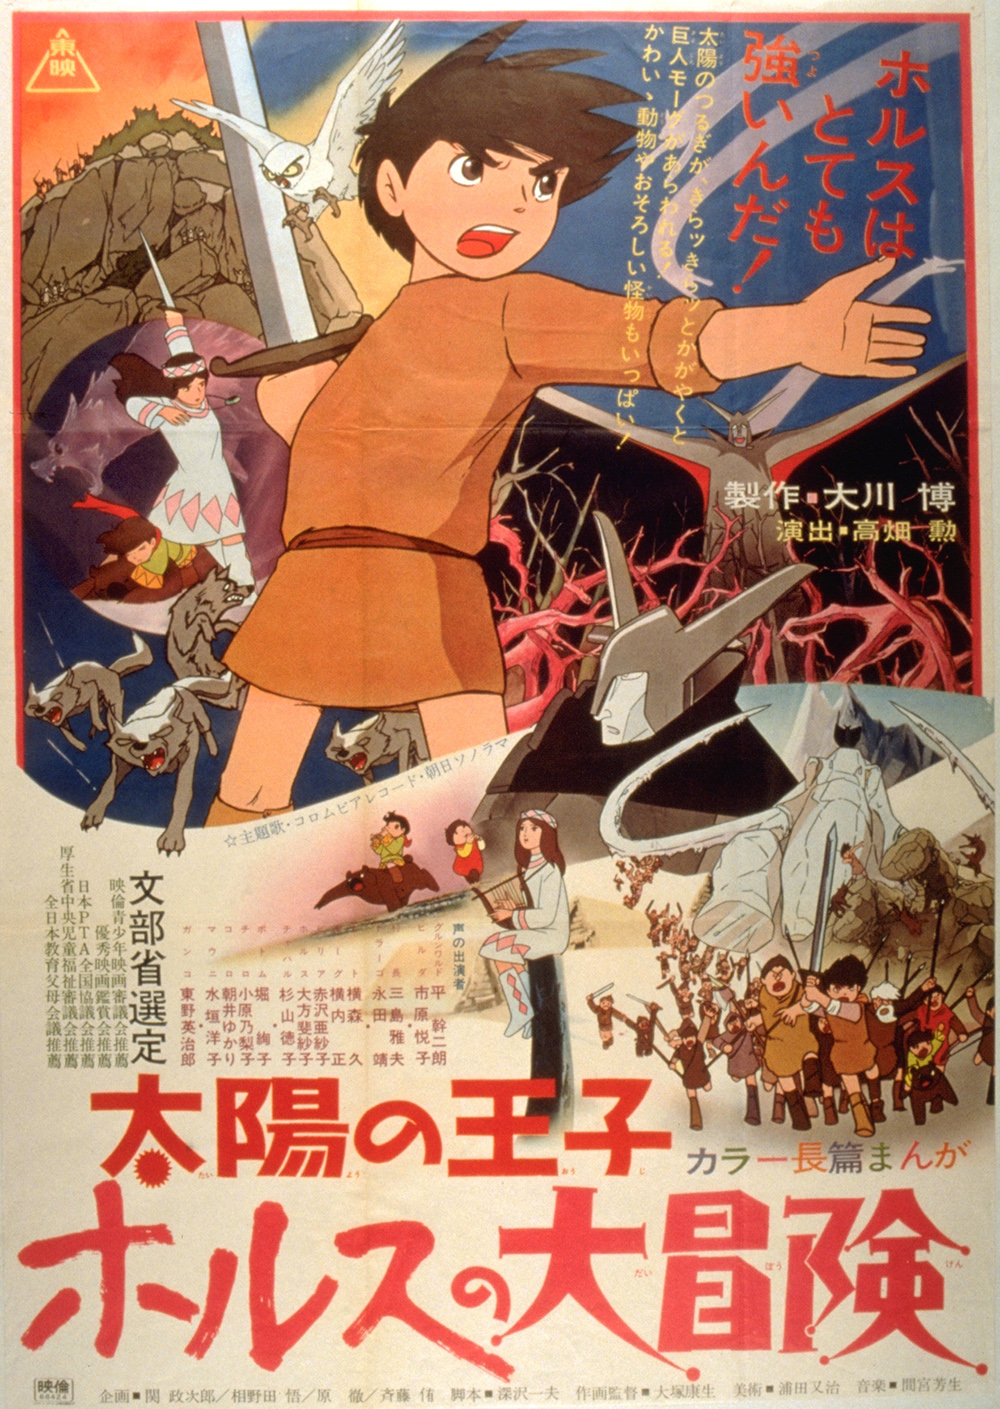 LITTLE NORSE PRINCE VALIANT Poster.jpg